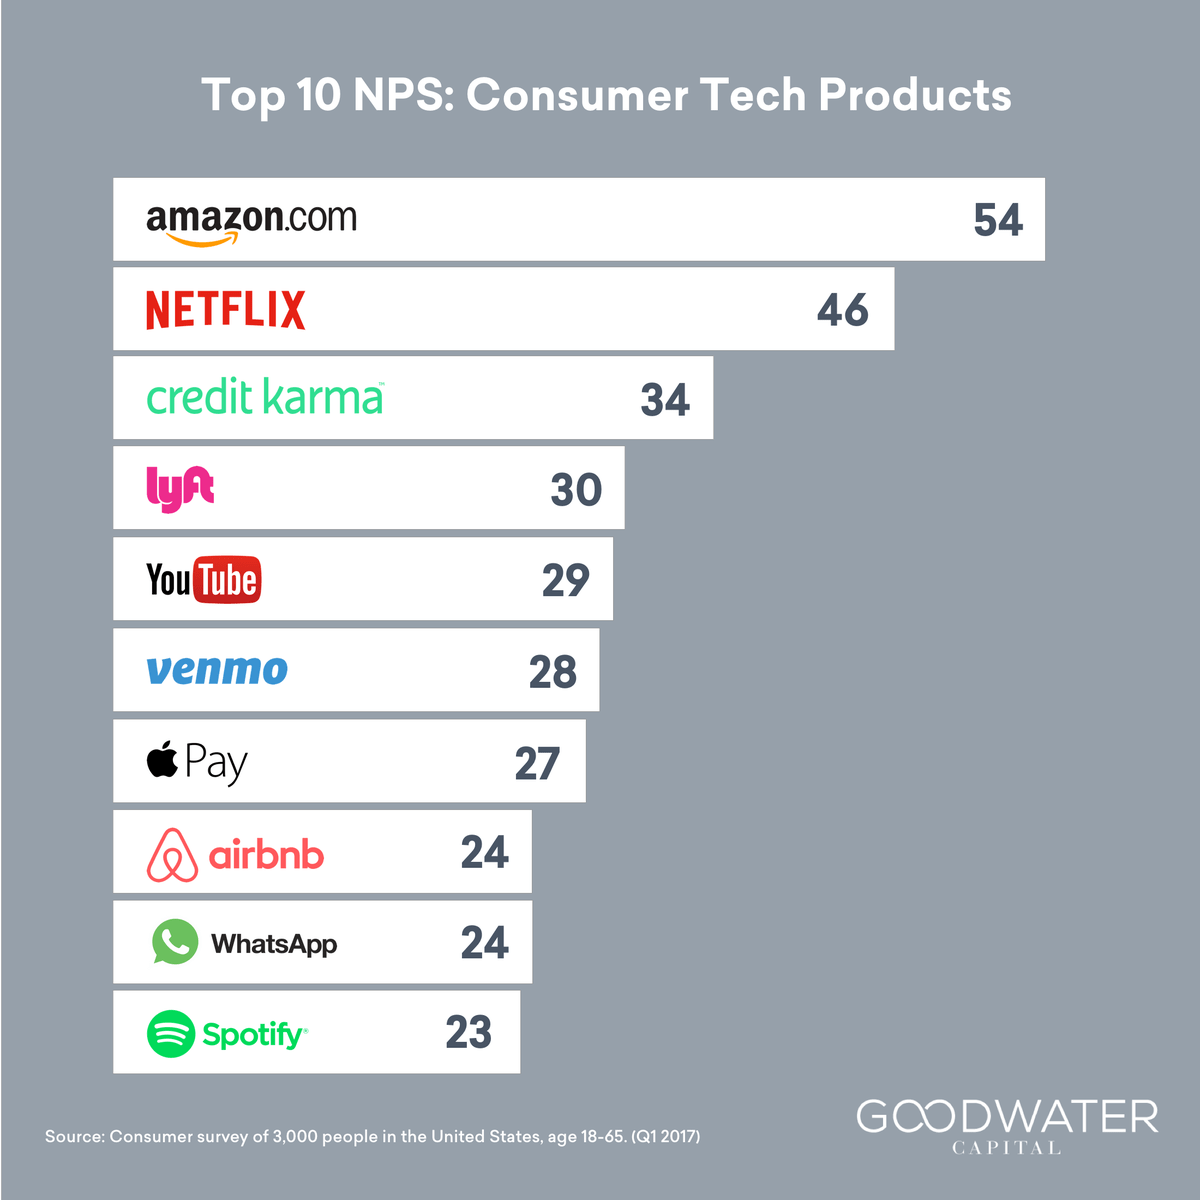 Credit Karma Goodwater Capital On Twitter